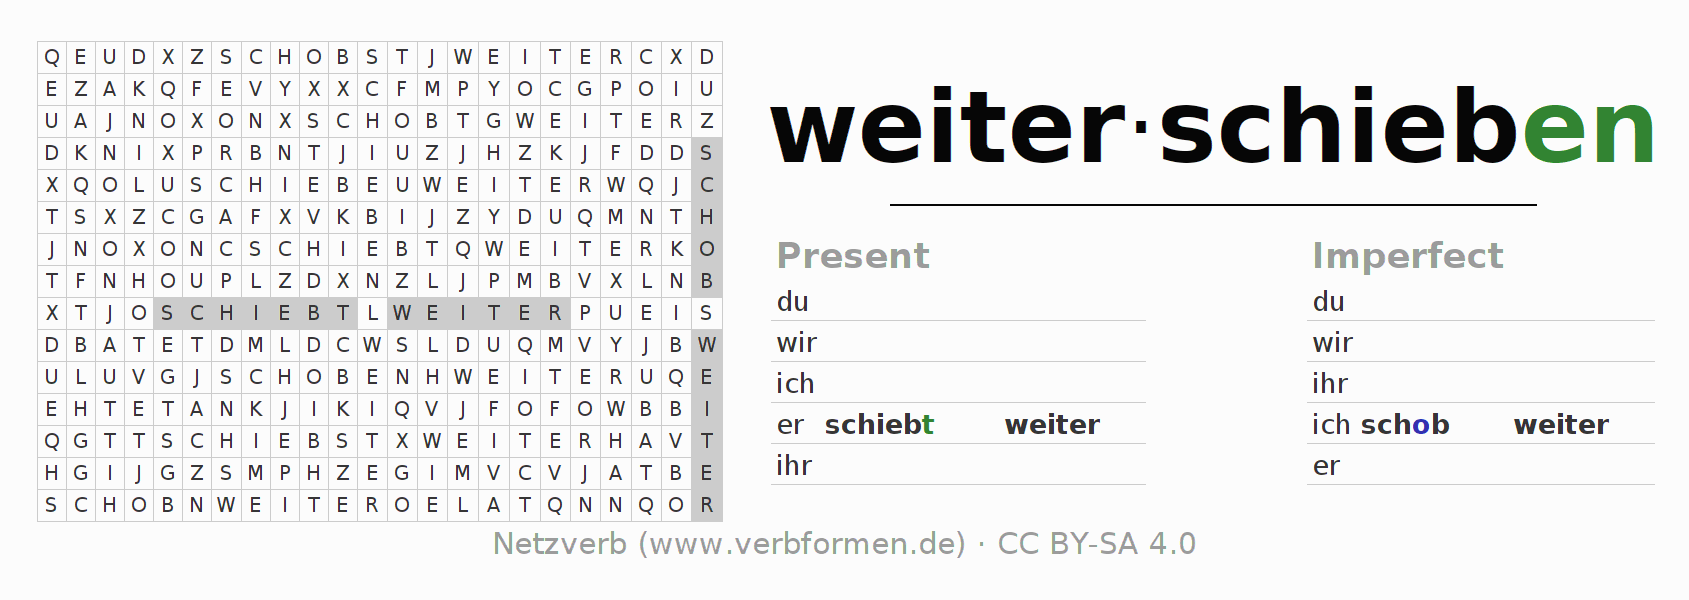 Word search puzzle for the conjugation of the verb weiterschieben